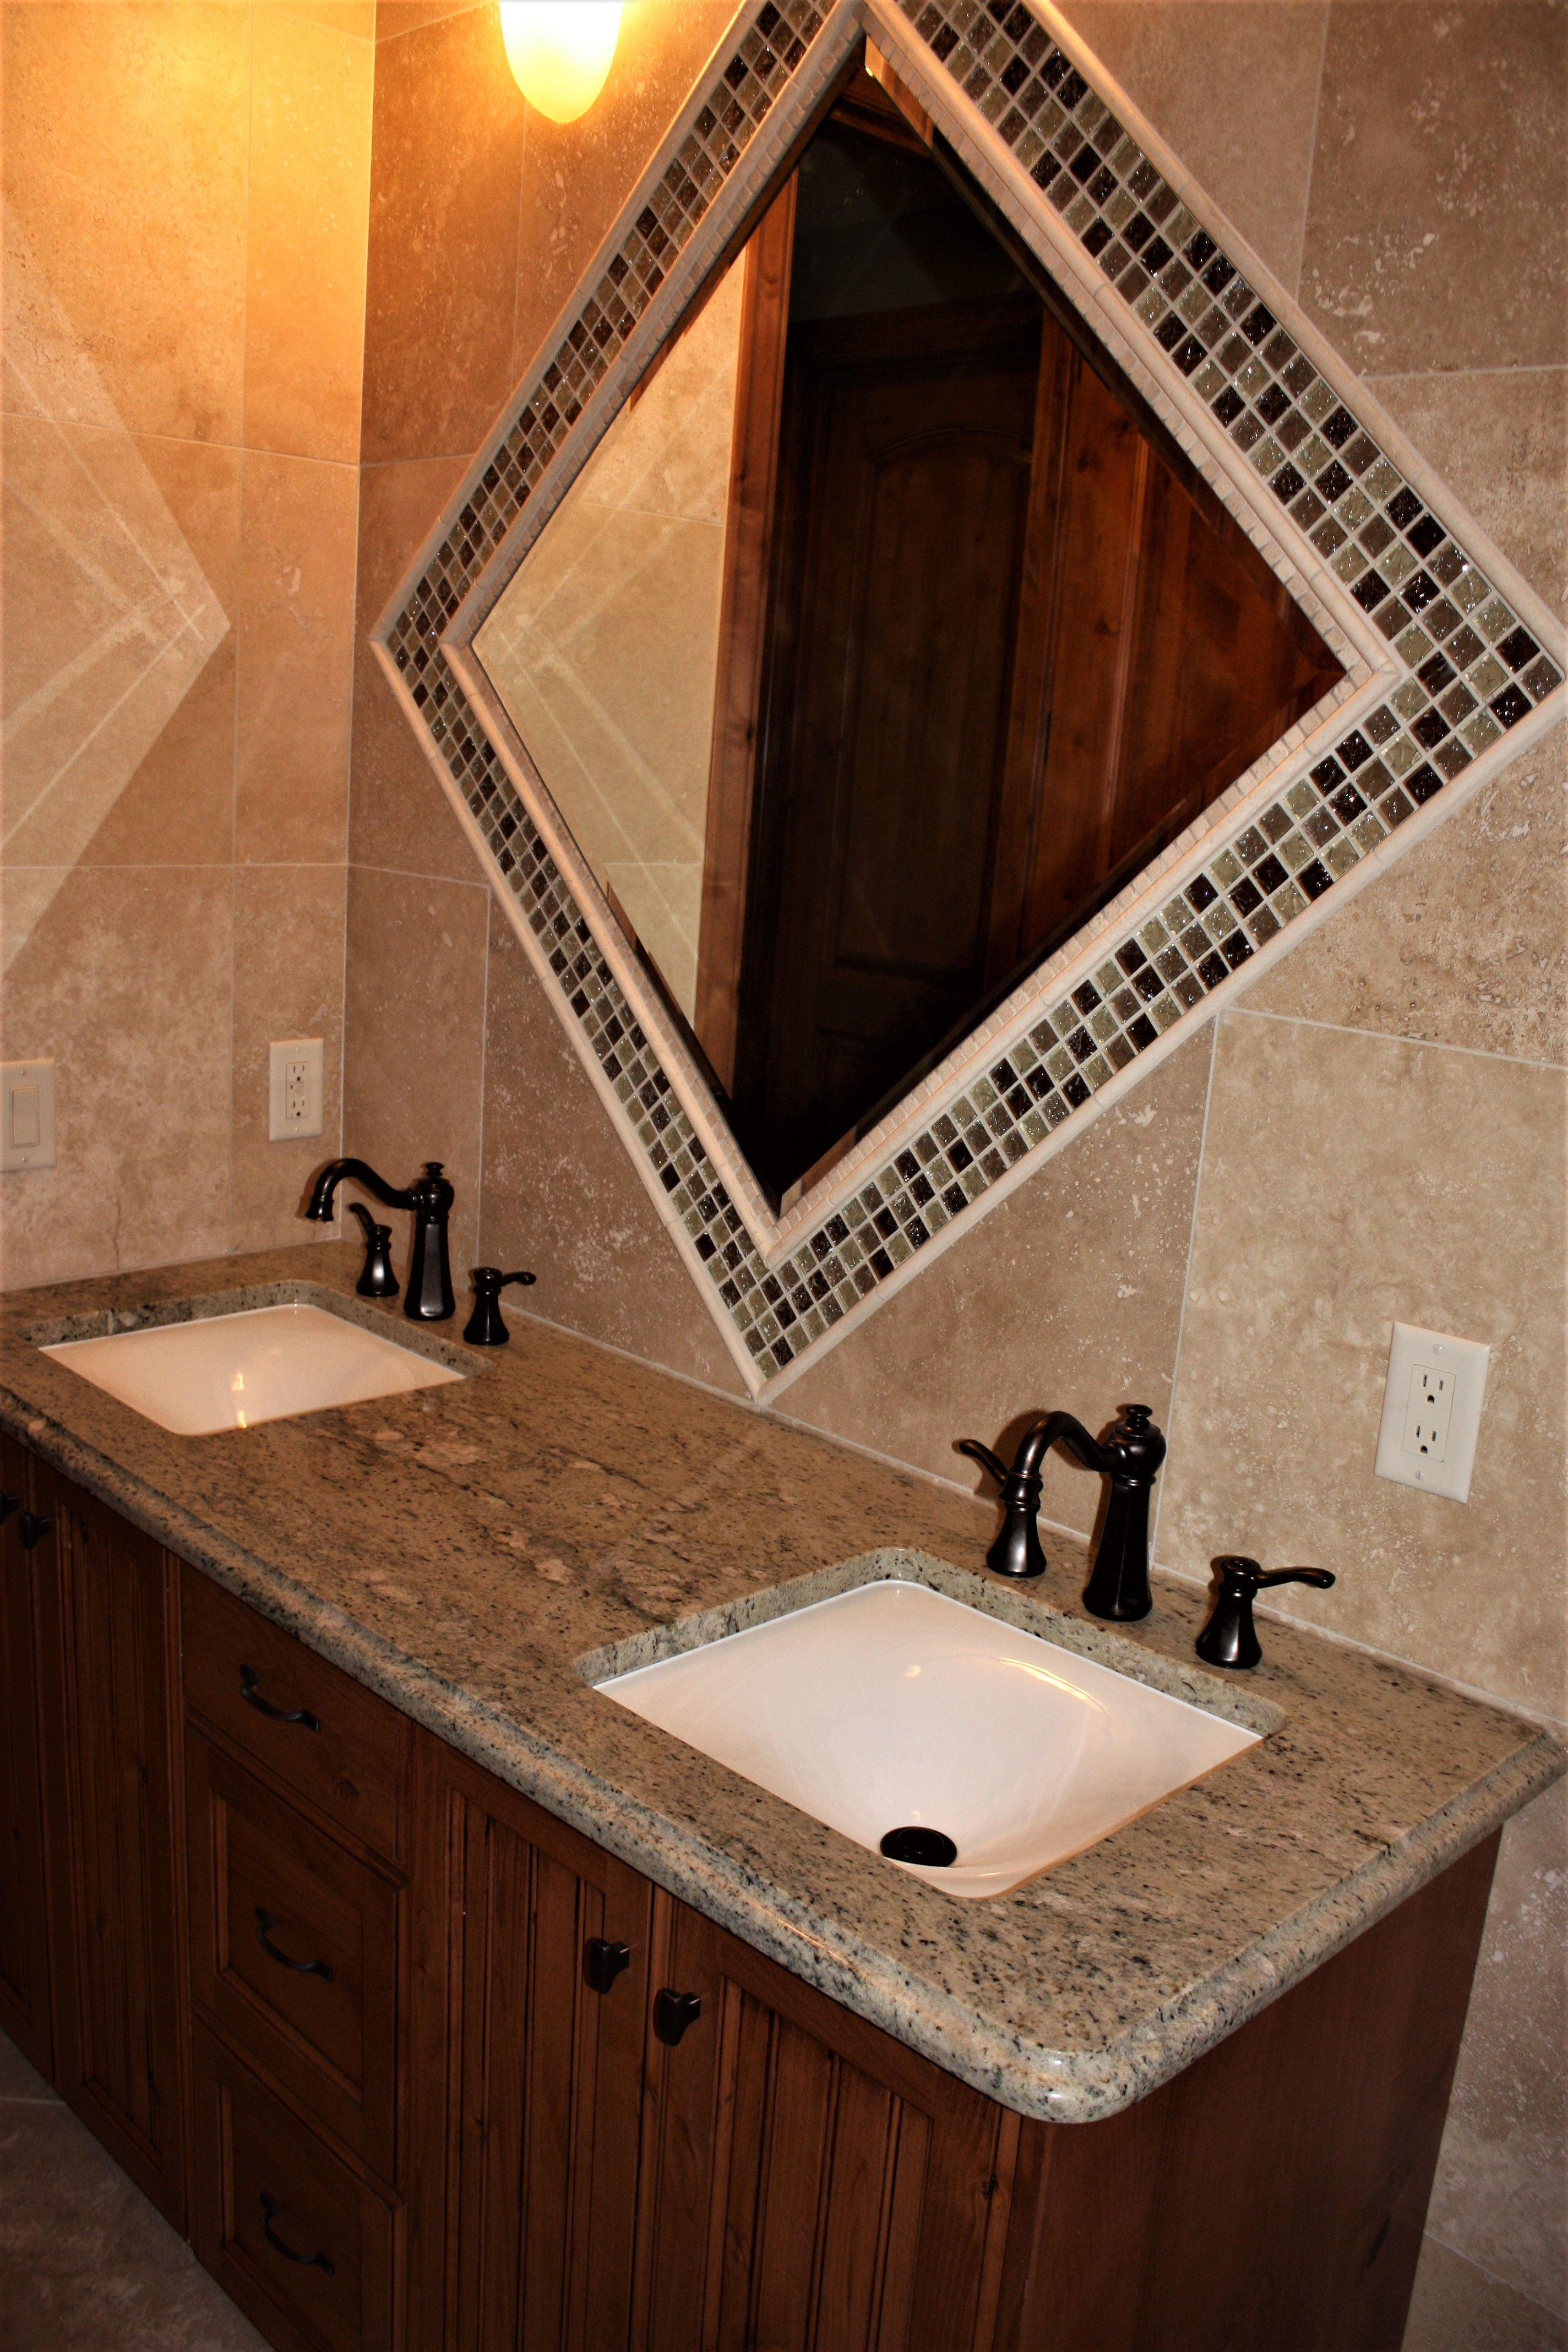 Beautiful Vanity Contact Valley View Granite For Your Own Http Www Valleyviewgranite Bathroom Countertops Kitchen Cabinets And Backsplash Rustic